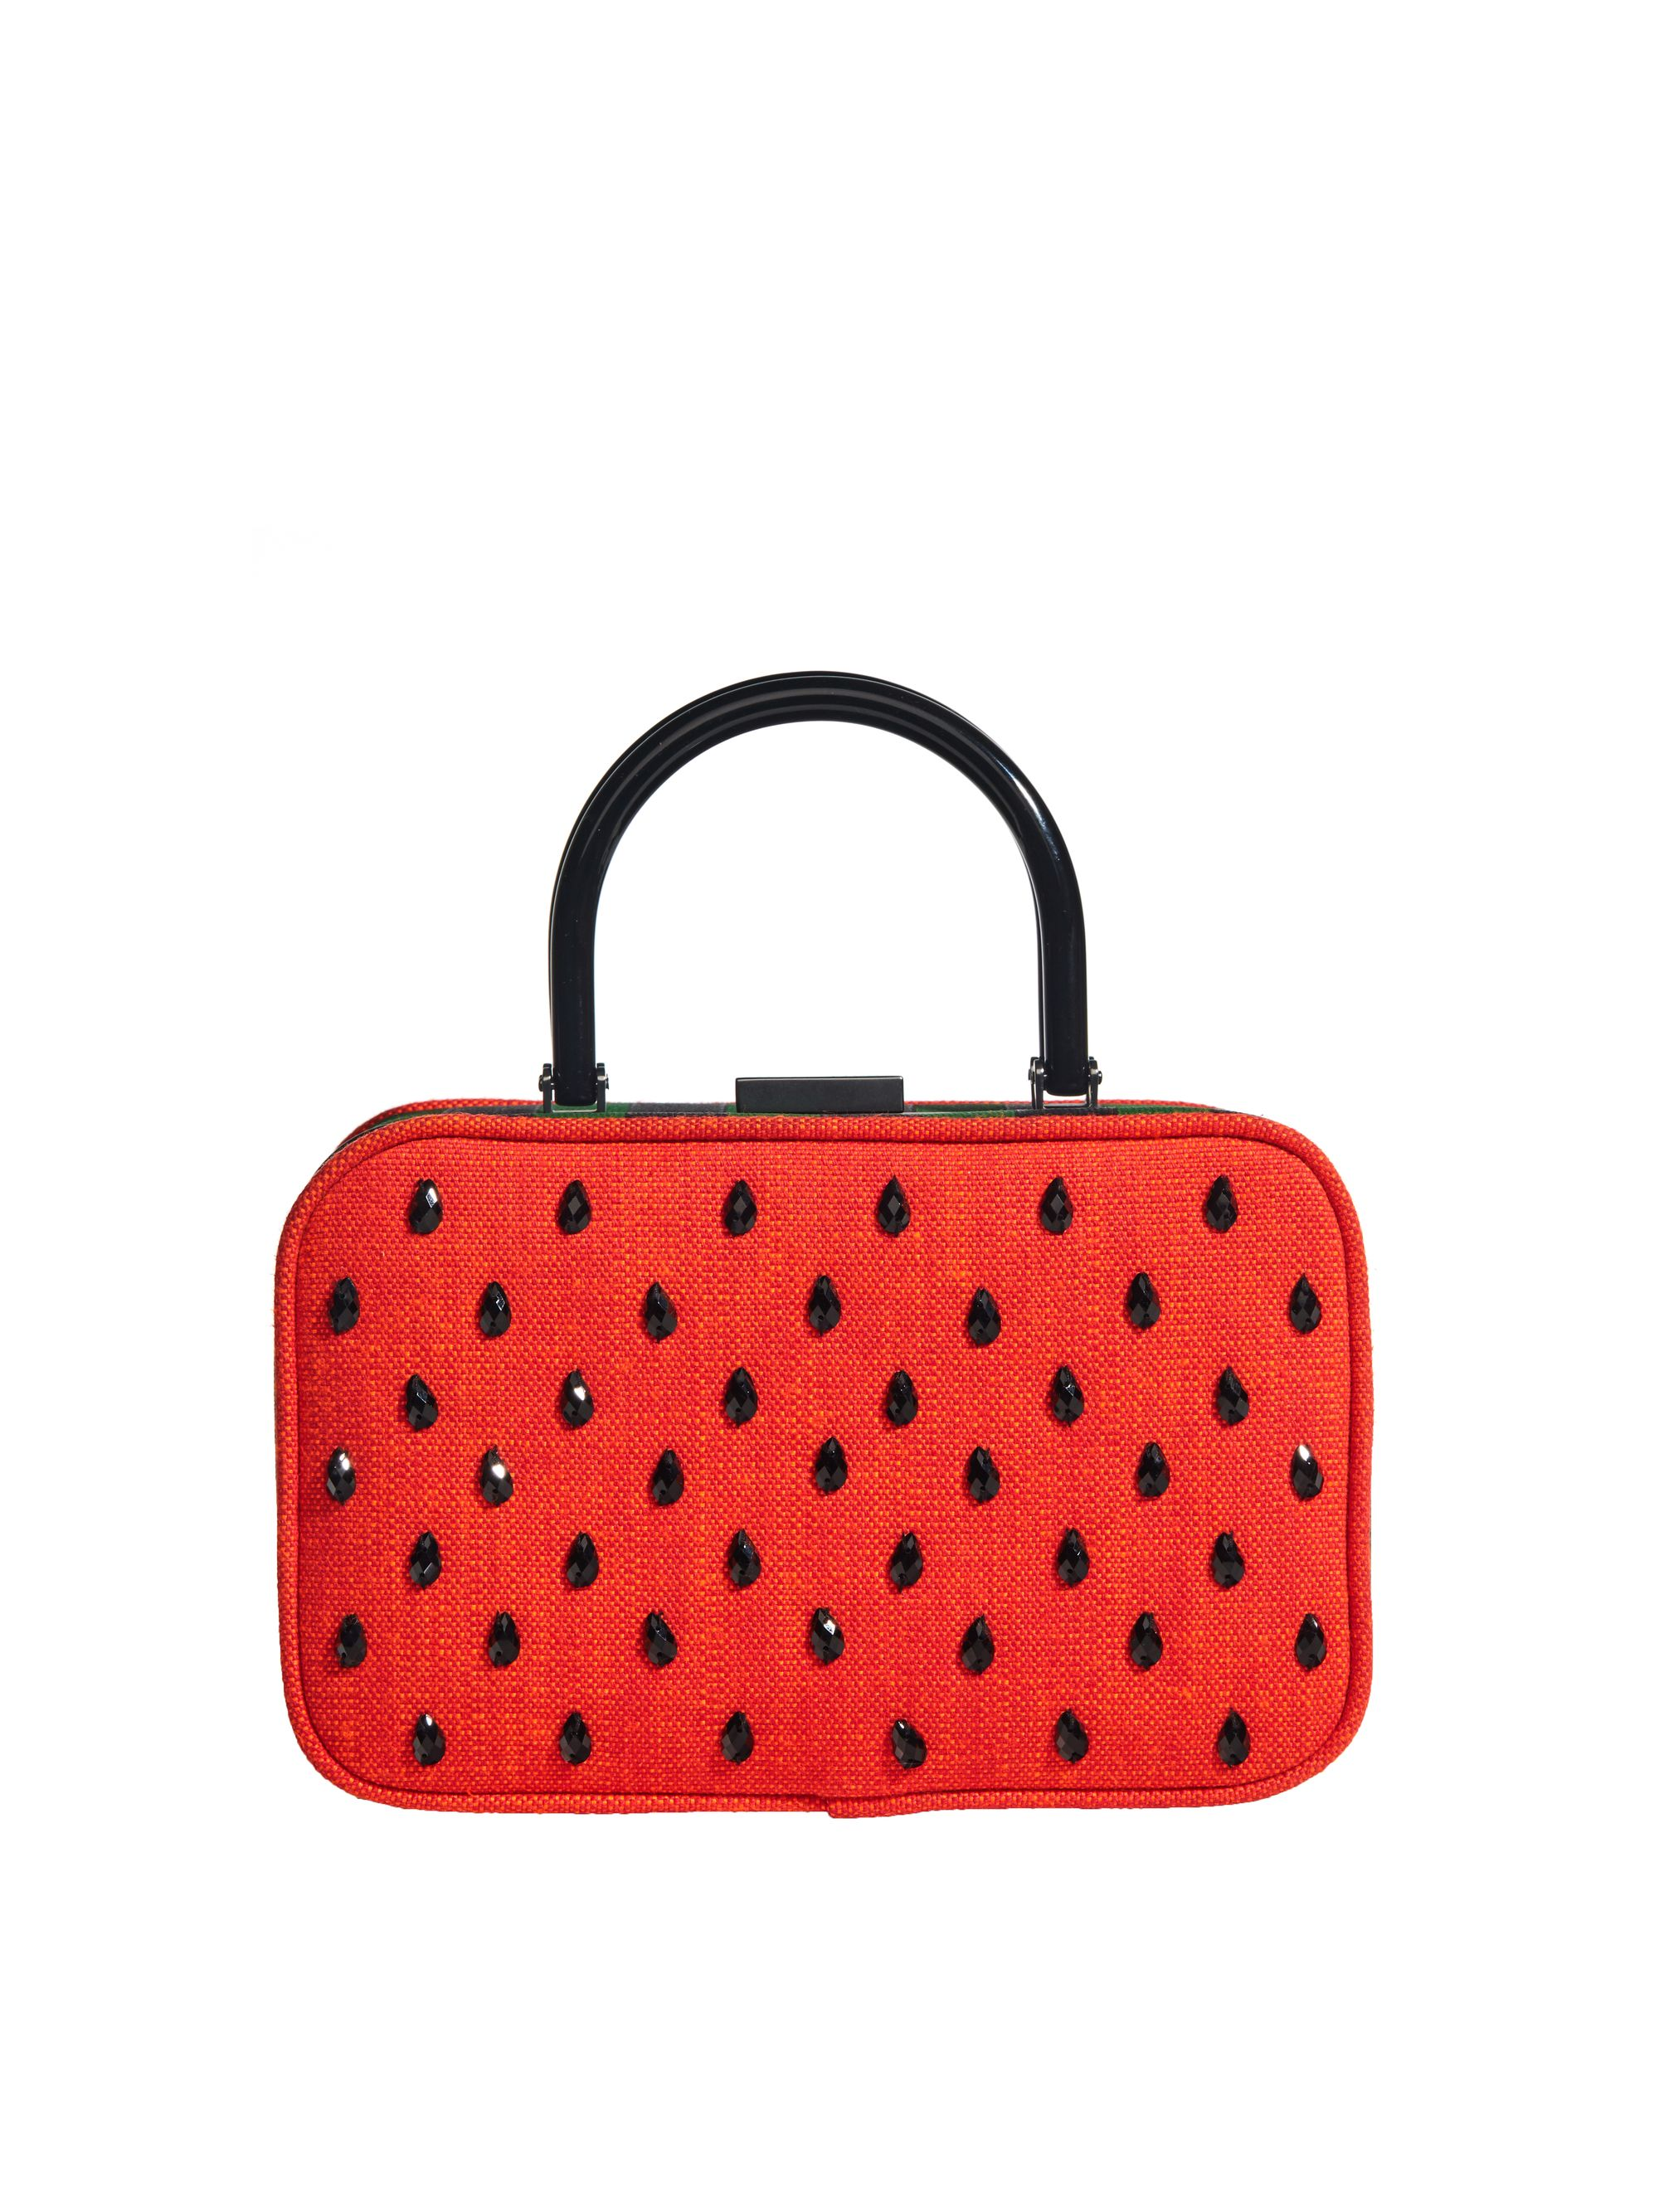 DREW WATERMELON FRAME BOX BAG by Alice + Olivia | HOT SUMMER ...